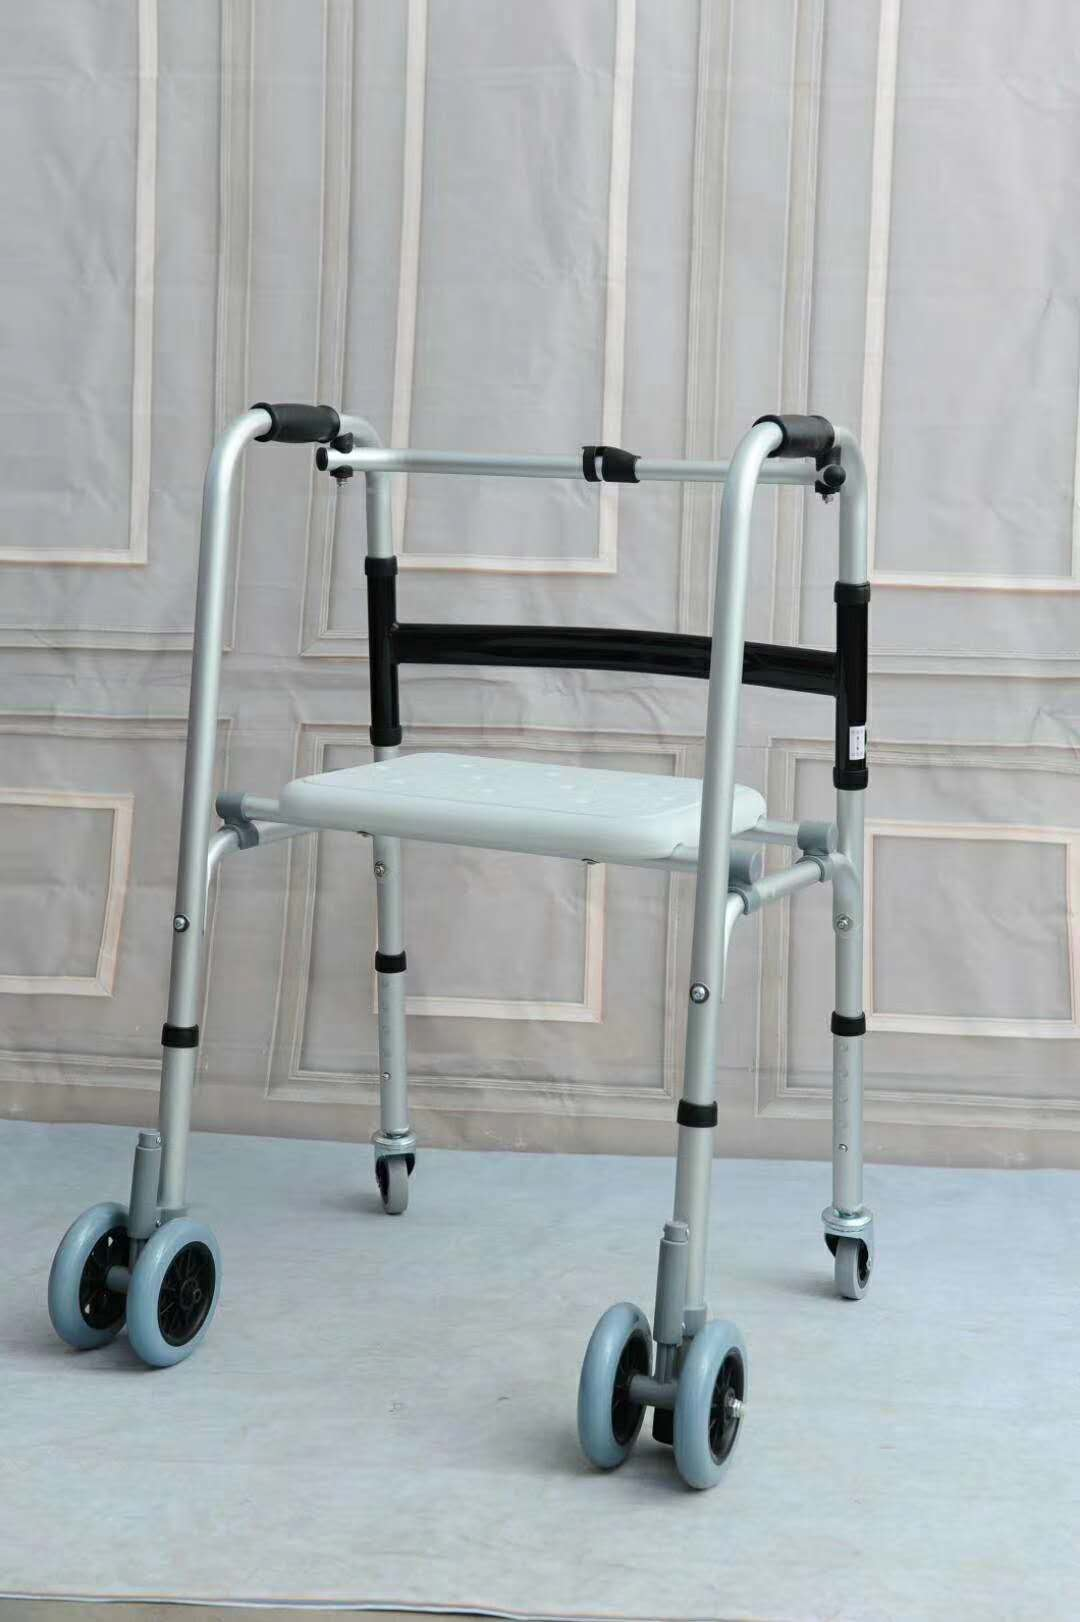 walker for patient.cane for the disabled, walking cane